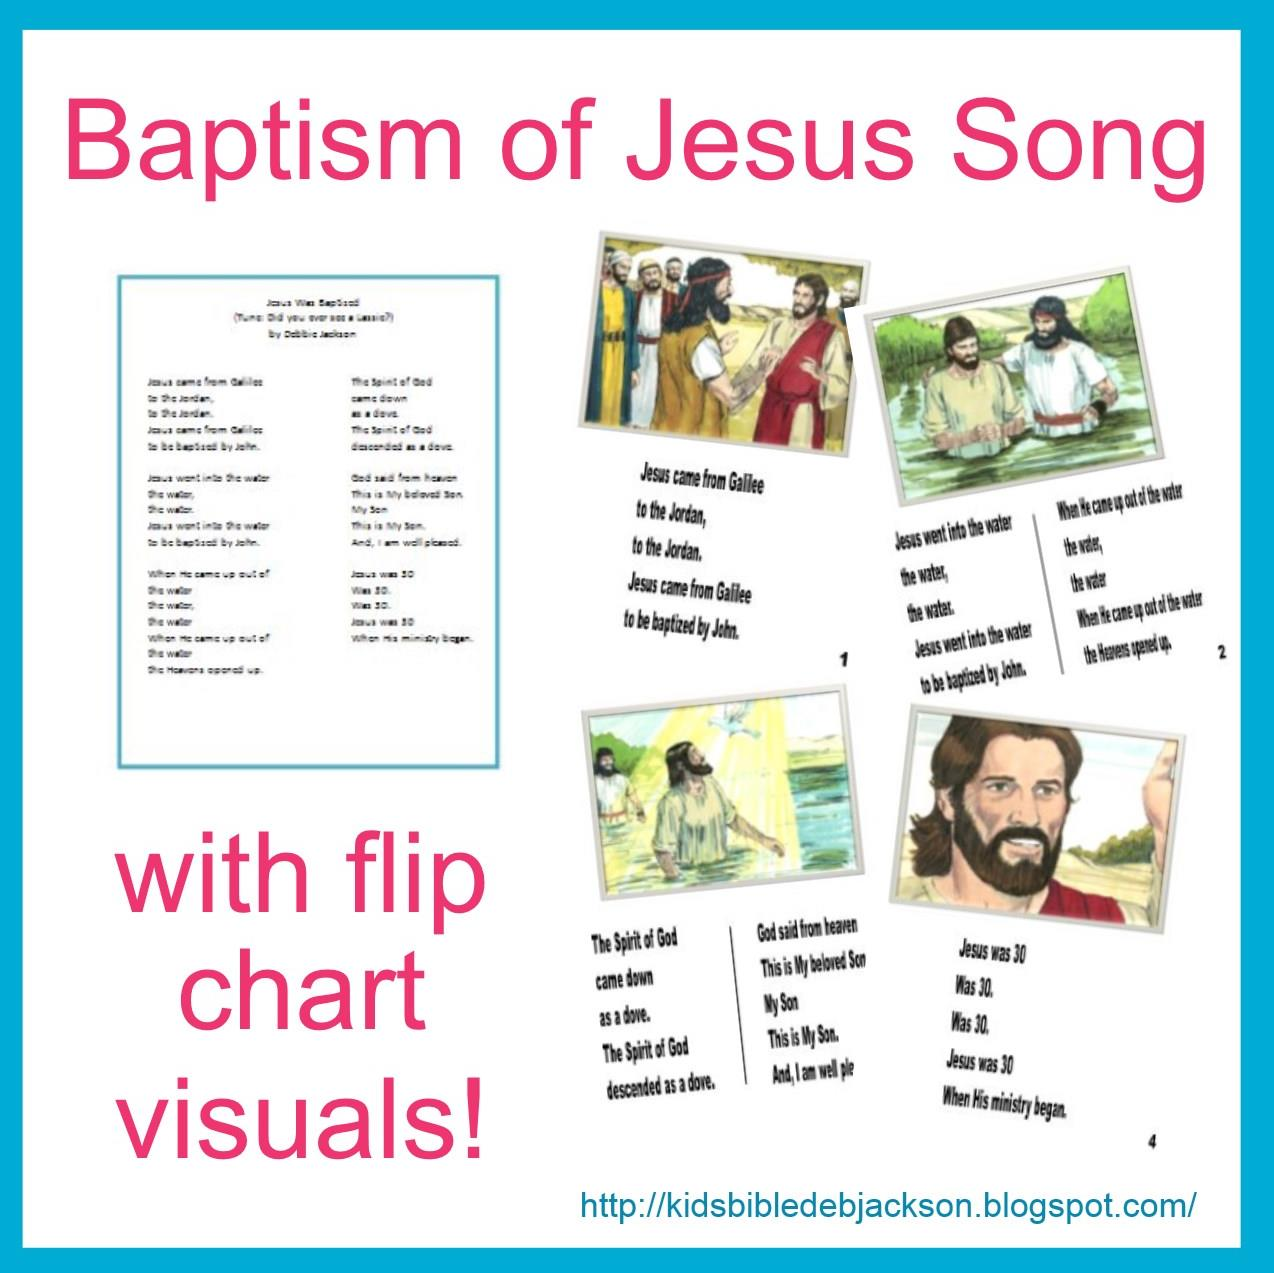 Baptism of Jesus Song with flip chart visuals